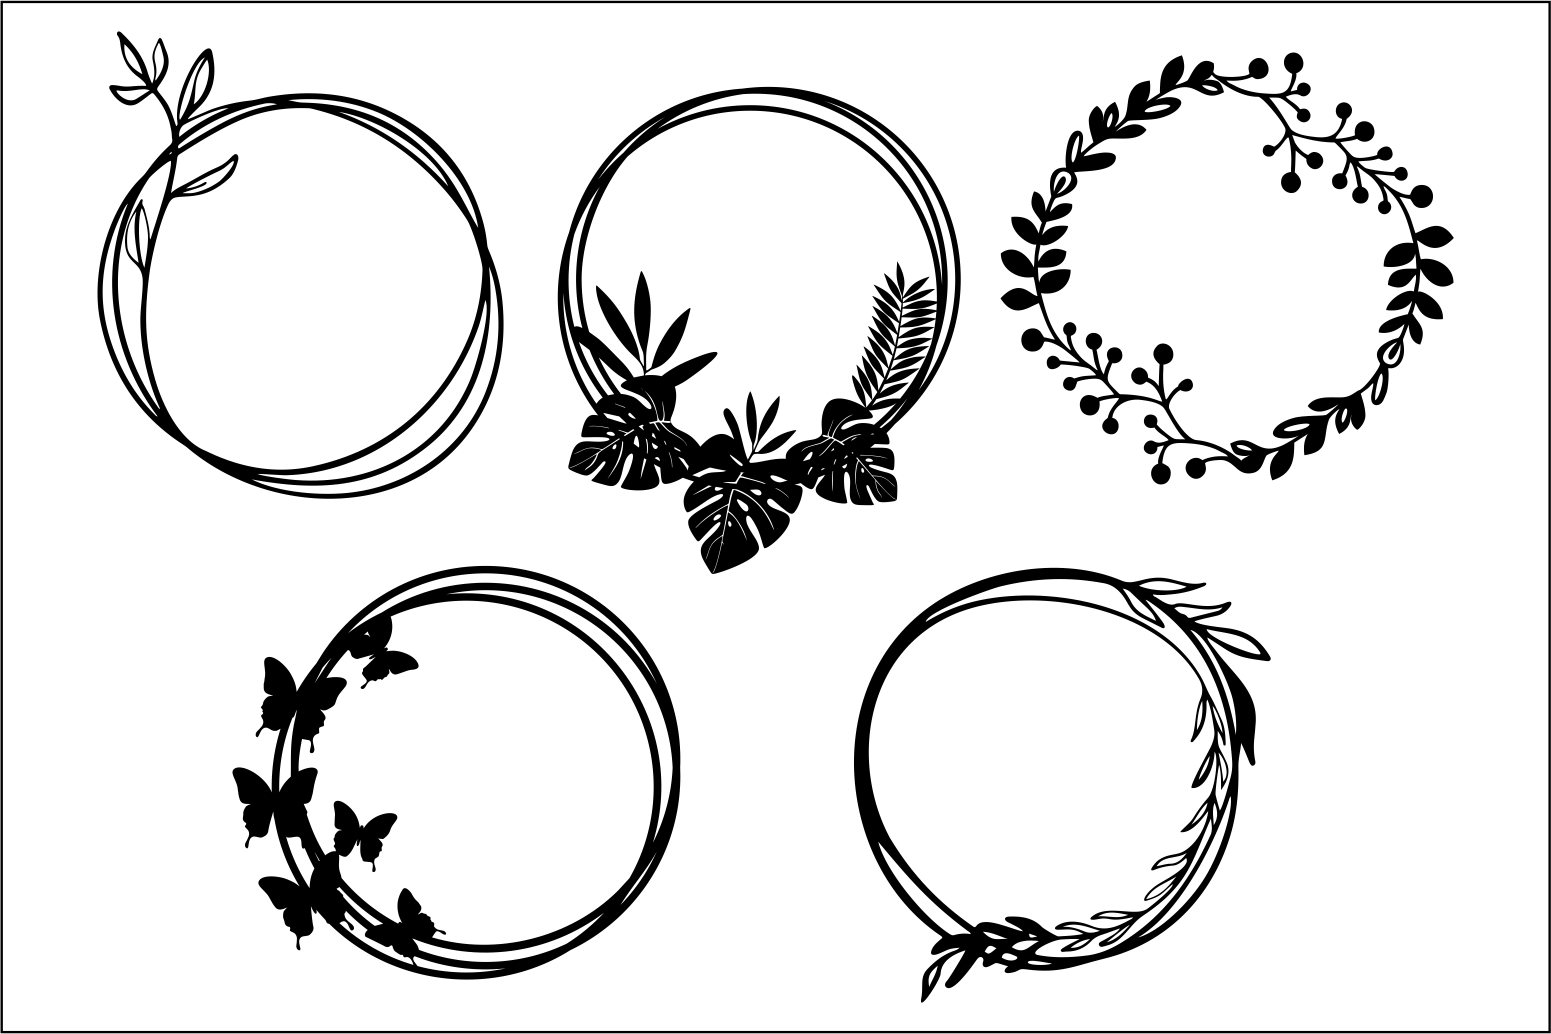 Download Free Circle Frames Cut File Graphic By Bn3300877 Creative Fabrica for Cricut Explore, Silhouette and other cutting machines.